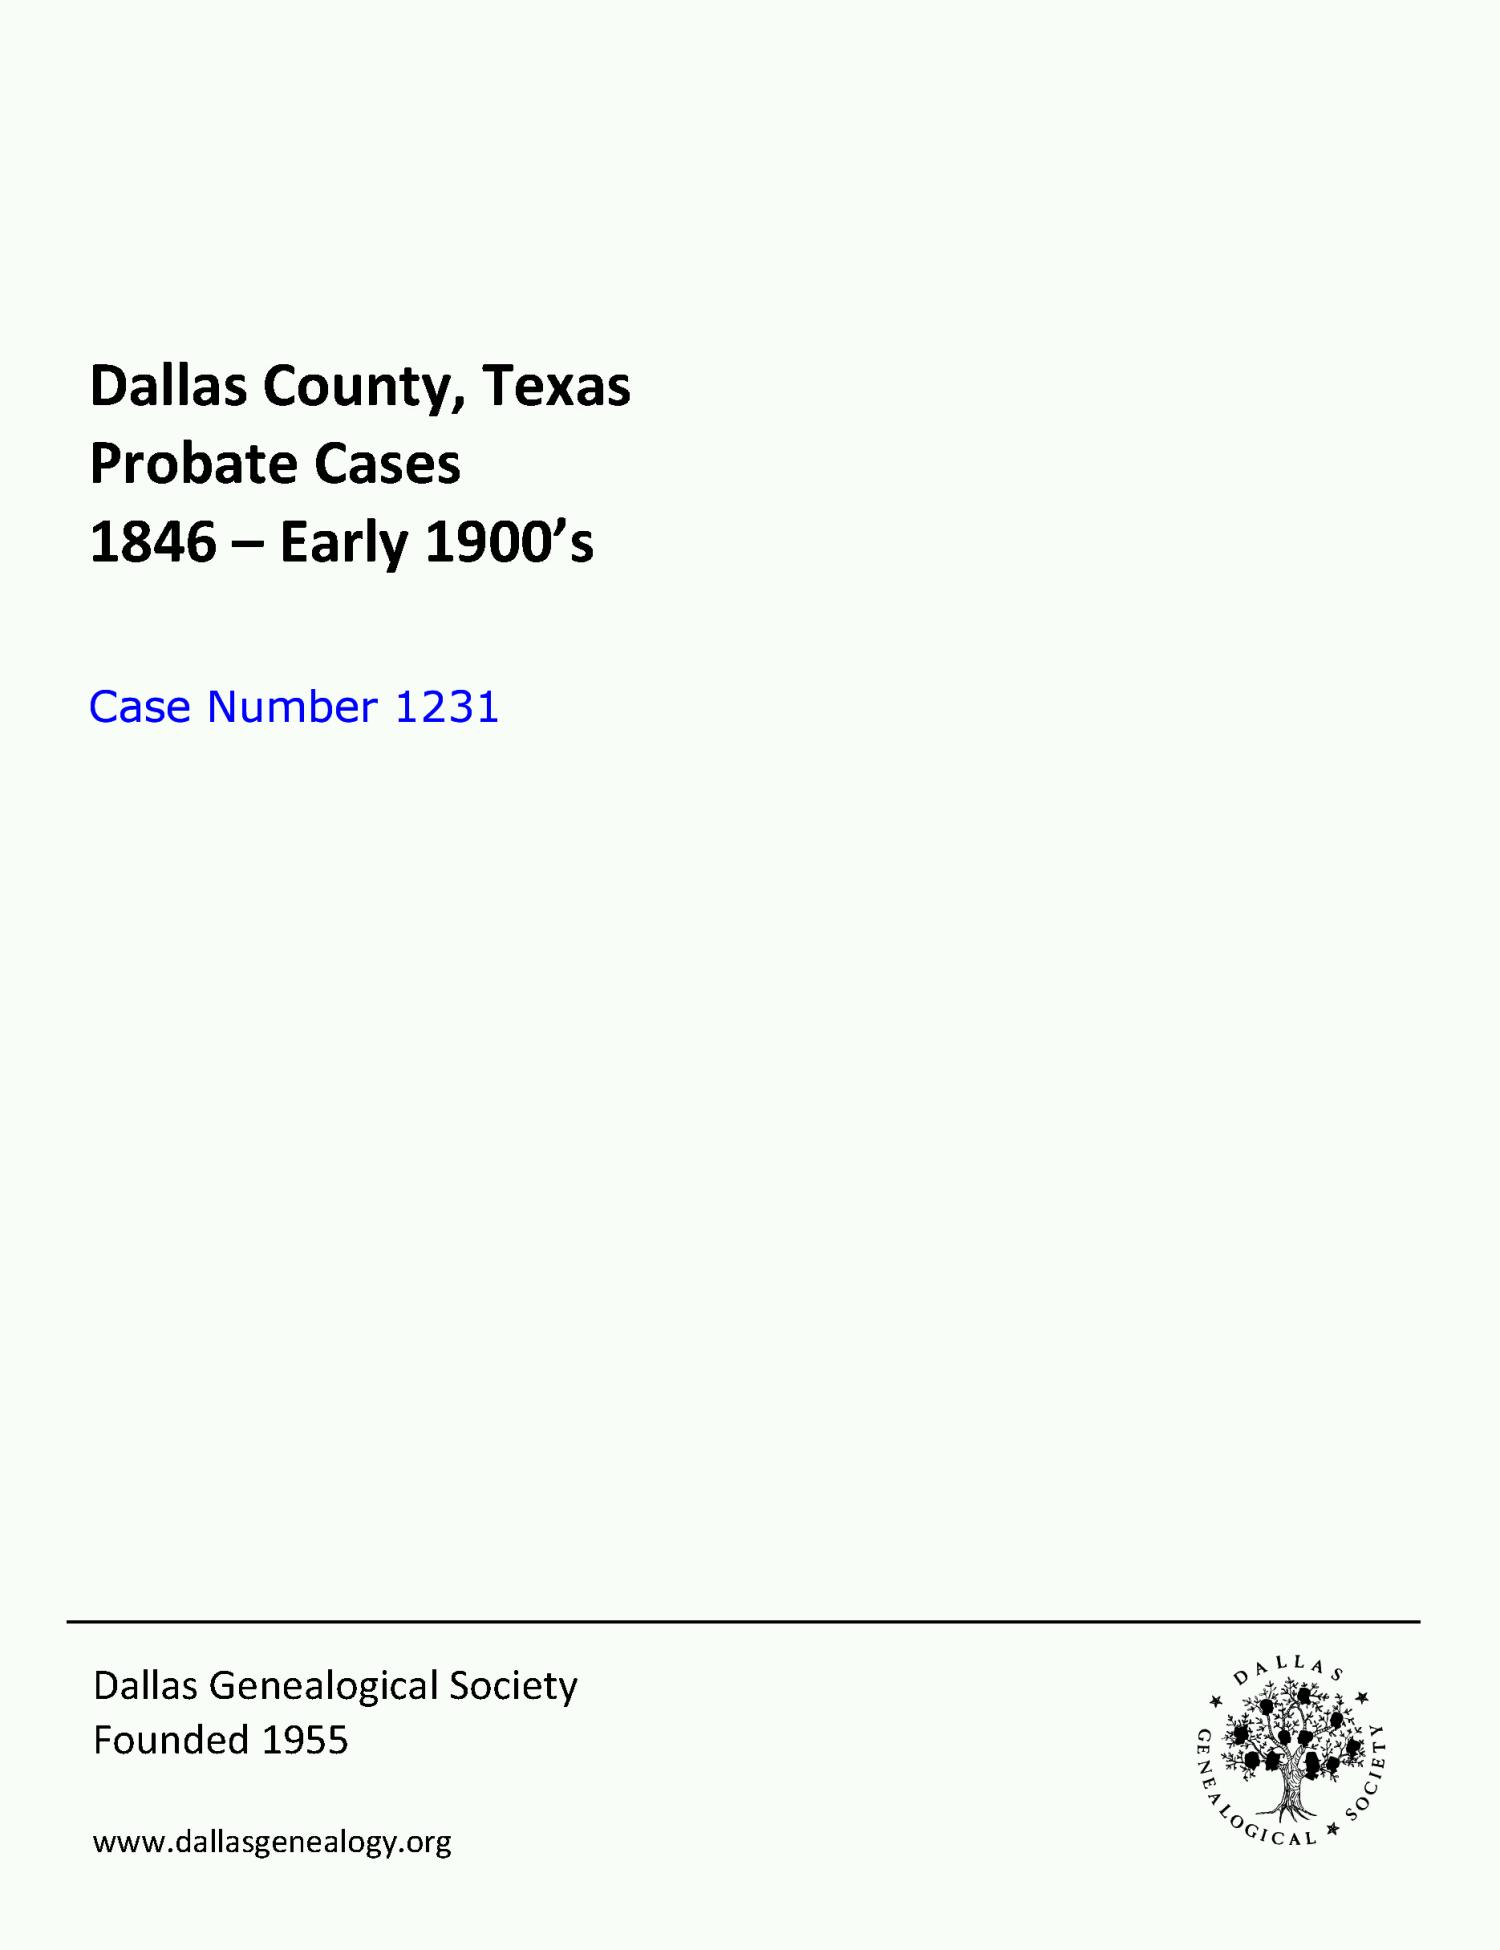 Dallas County Probate Case 1231: West, Jno. et al (Minors)                                                                                                      [Sequence #]: 1 of 57